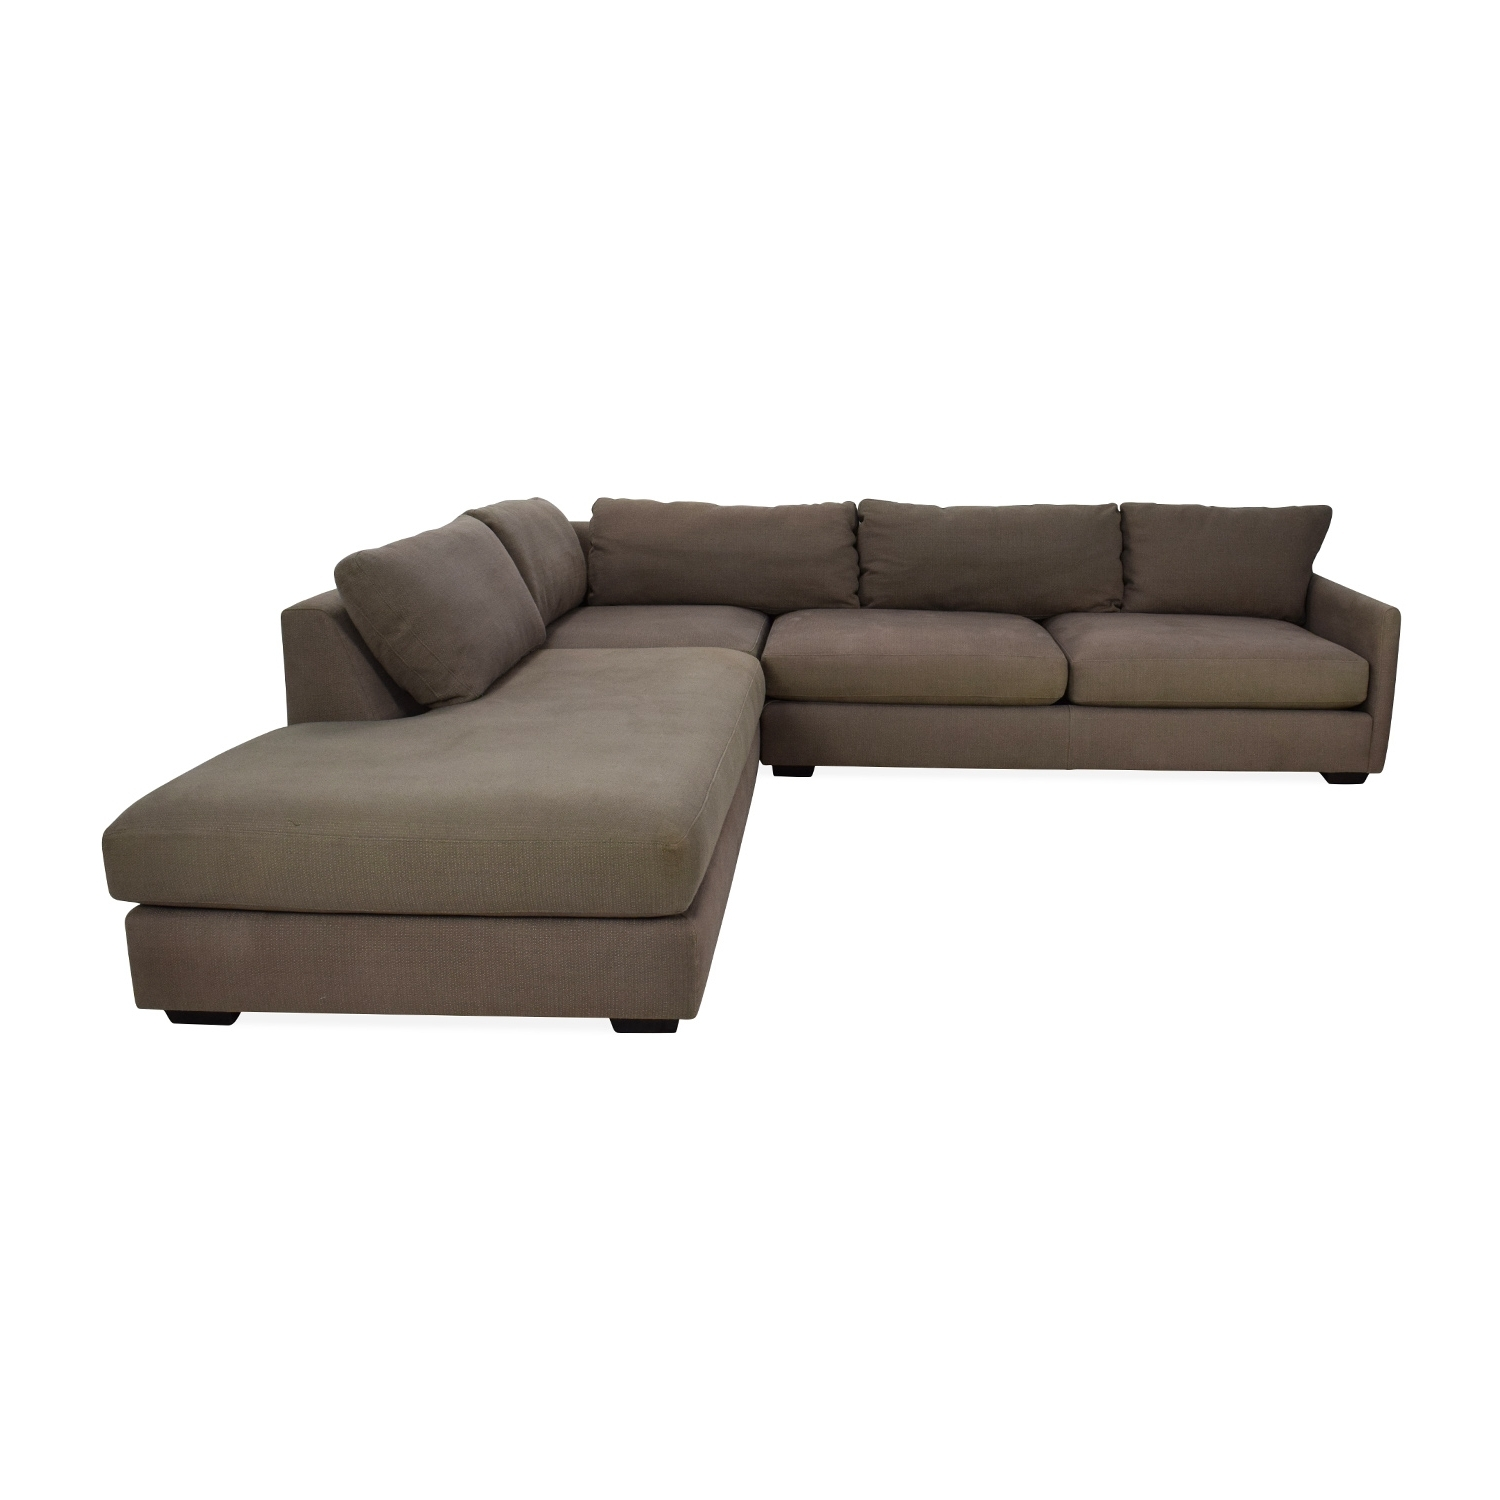 [%82% Off – Crate And Barrel Crate & Barrel Domino Sectional Sofa Regarding Most Popular Crate And Barrel Chaises|Crate And Barrel Chaises For Most Popular 82% Off – Crate And Barrel Crate & Barrel Domino Sectional Sofa|Current Crate And Barrel Chaises For 82% Off – Crate And Barrel Crate & Barrel Domino Sectional Sofa|2018 82% Off – Crate And Barrel Crate & Barrel Domino Sectional Sofa Within Crate And Barrel Chaises%] (View 4 of 15)